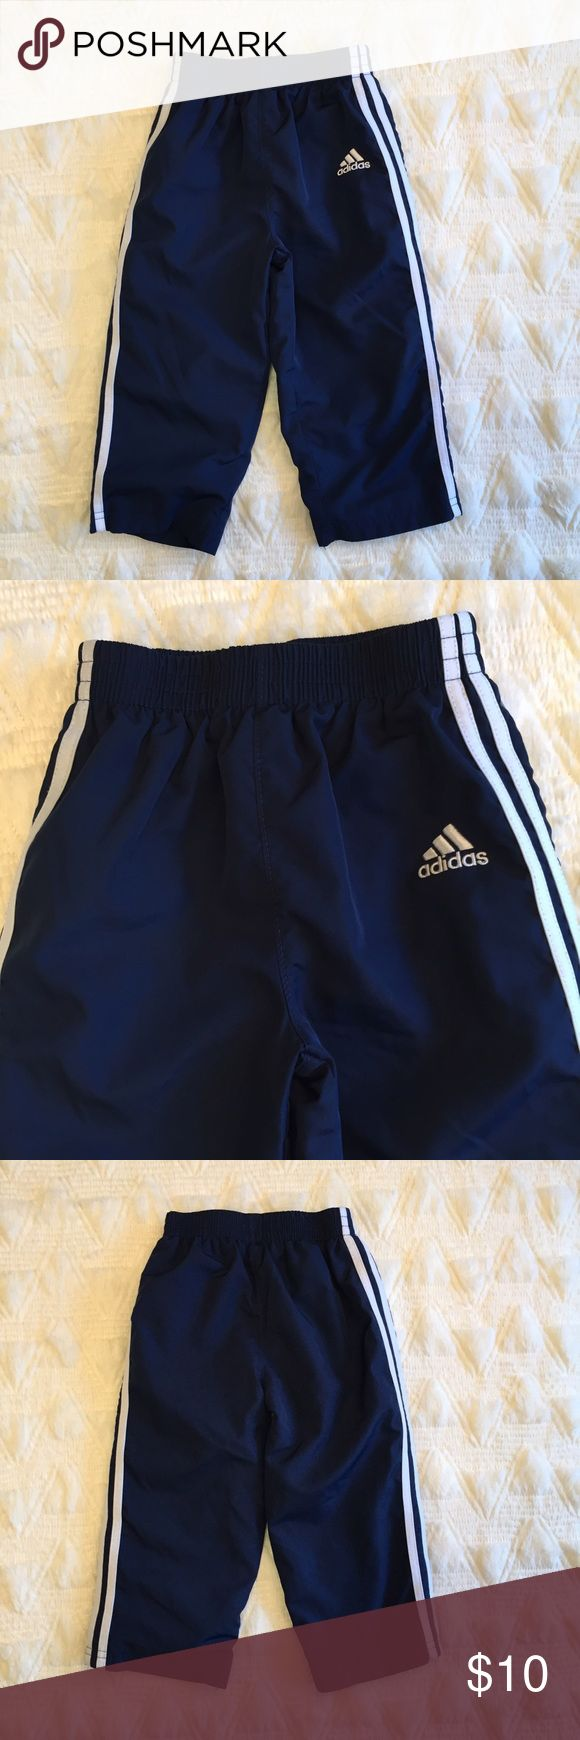 Adidas Baby Boy Pants Size 18M Brand: Adidas  Size: 18M  Description: Boys Track Windbreaker Pants.  Condition: Excellent pre-loved  Fabric: 100% Polyester  Item #SB640 Adidas Bottoms Casual